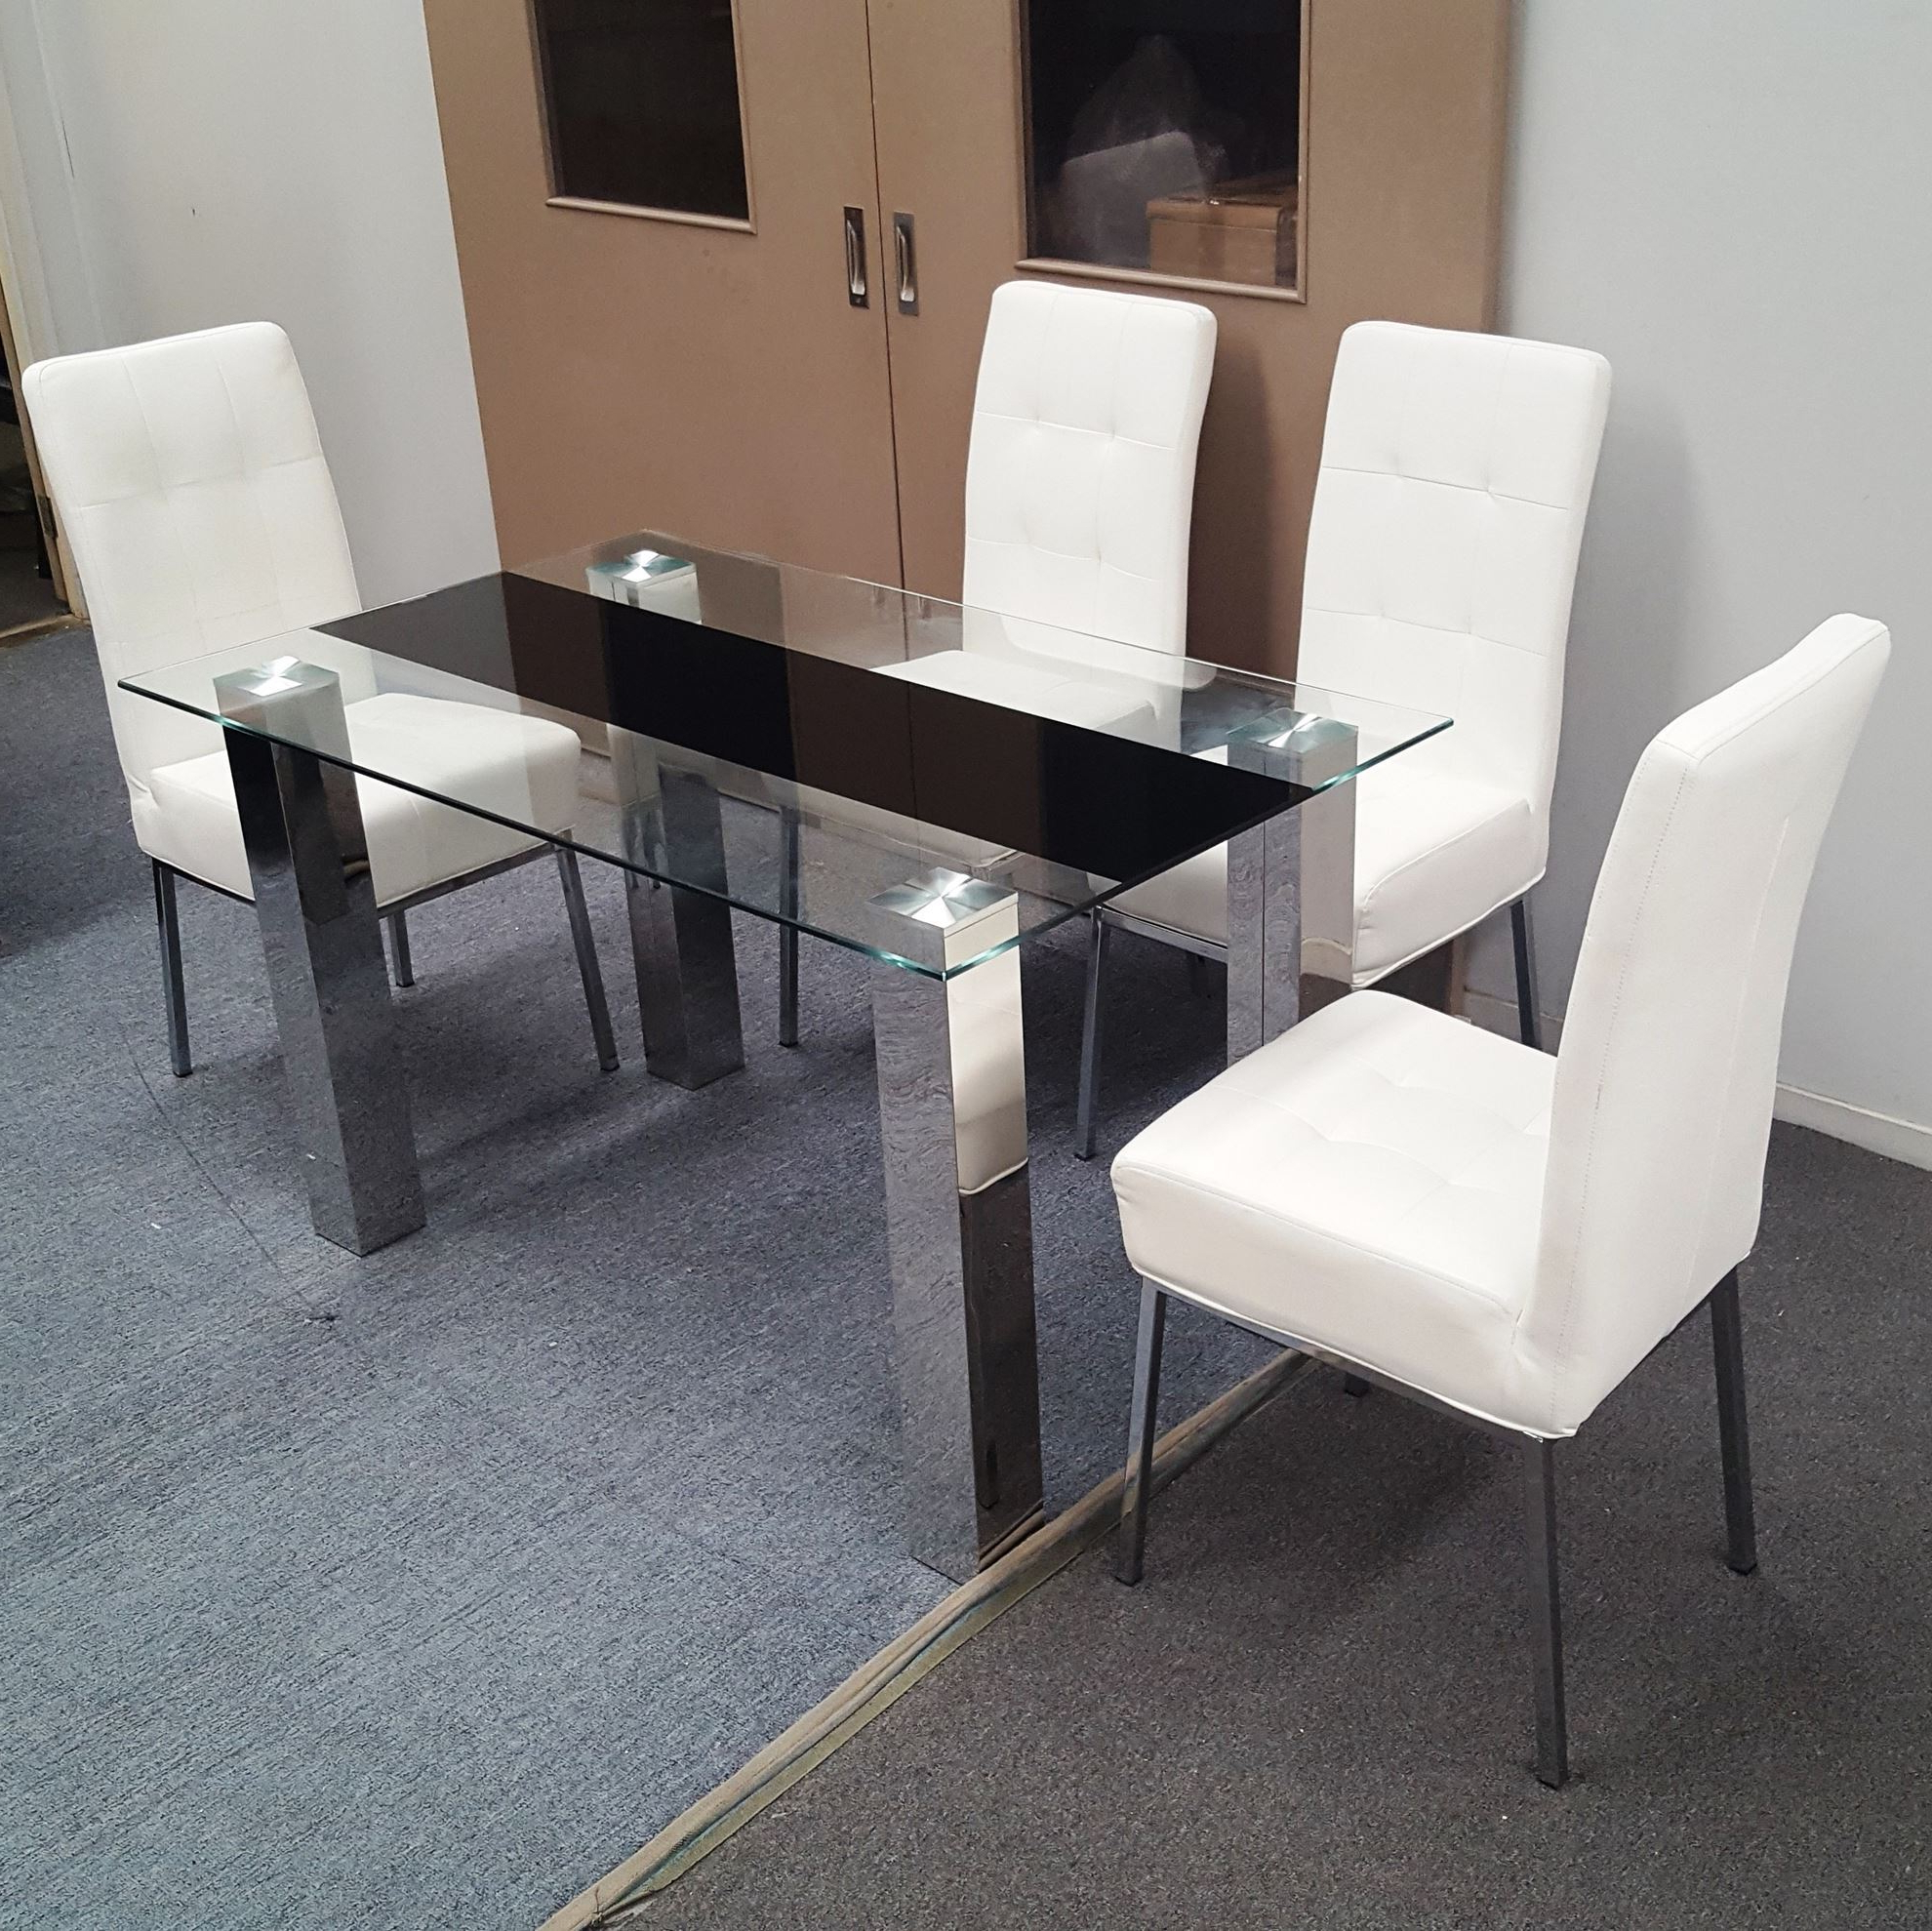 Levi Dining Table Tempered Glass 1300mm X 800mm (table Only) Regarding Well Known Chrome Dining Tables With Tempered Glass (View 24 of 30)